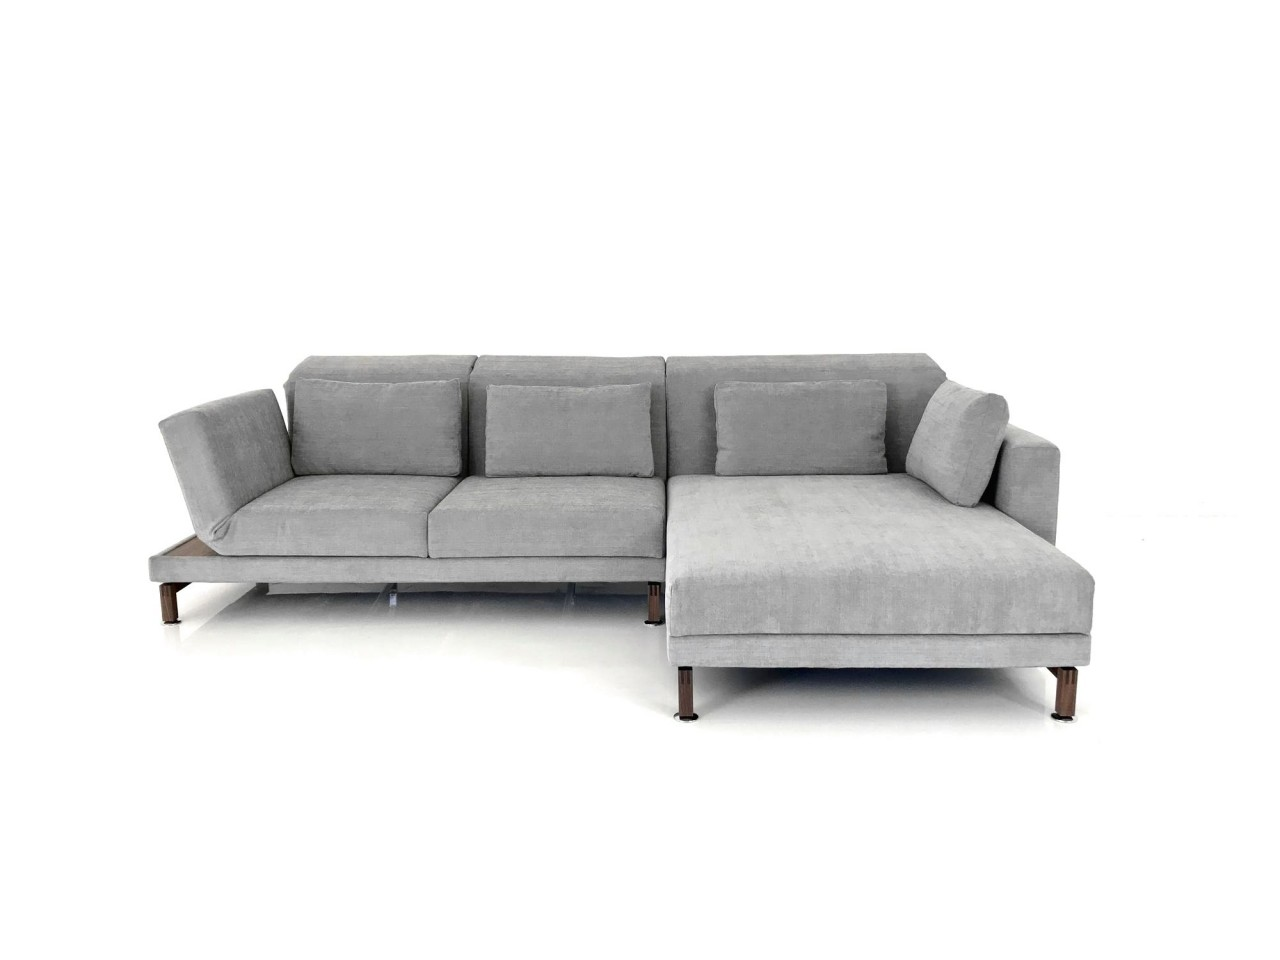 Sofa Mit Perfect Couch With Sofa Mit Latest Sofa Mit